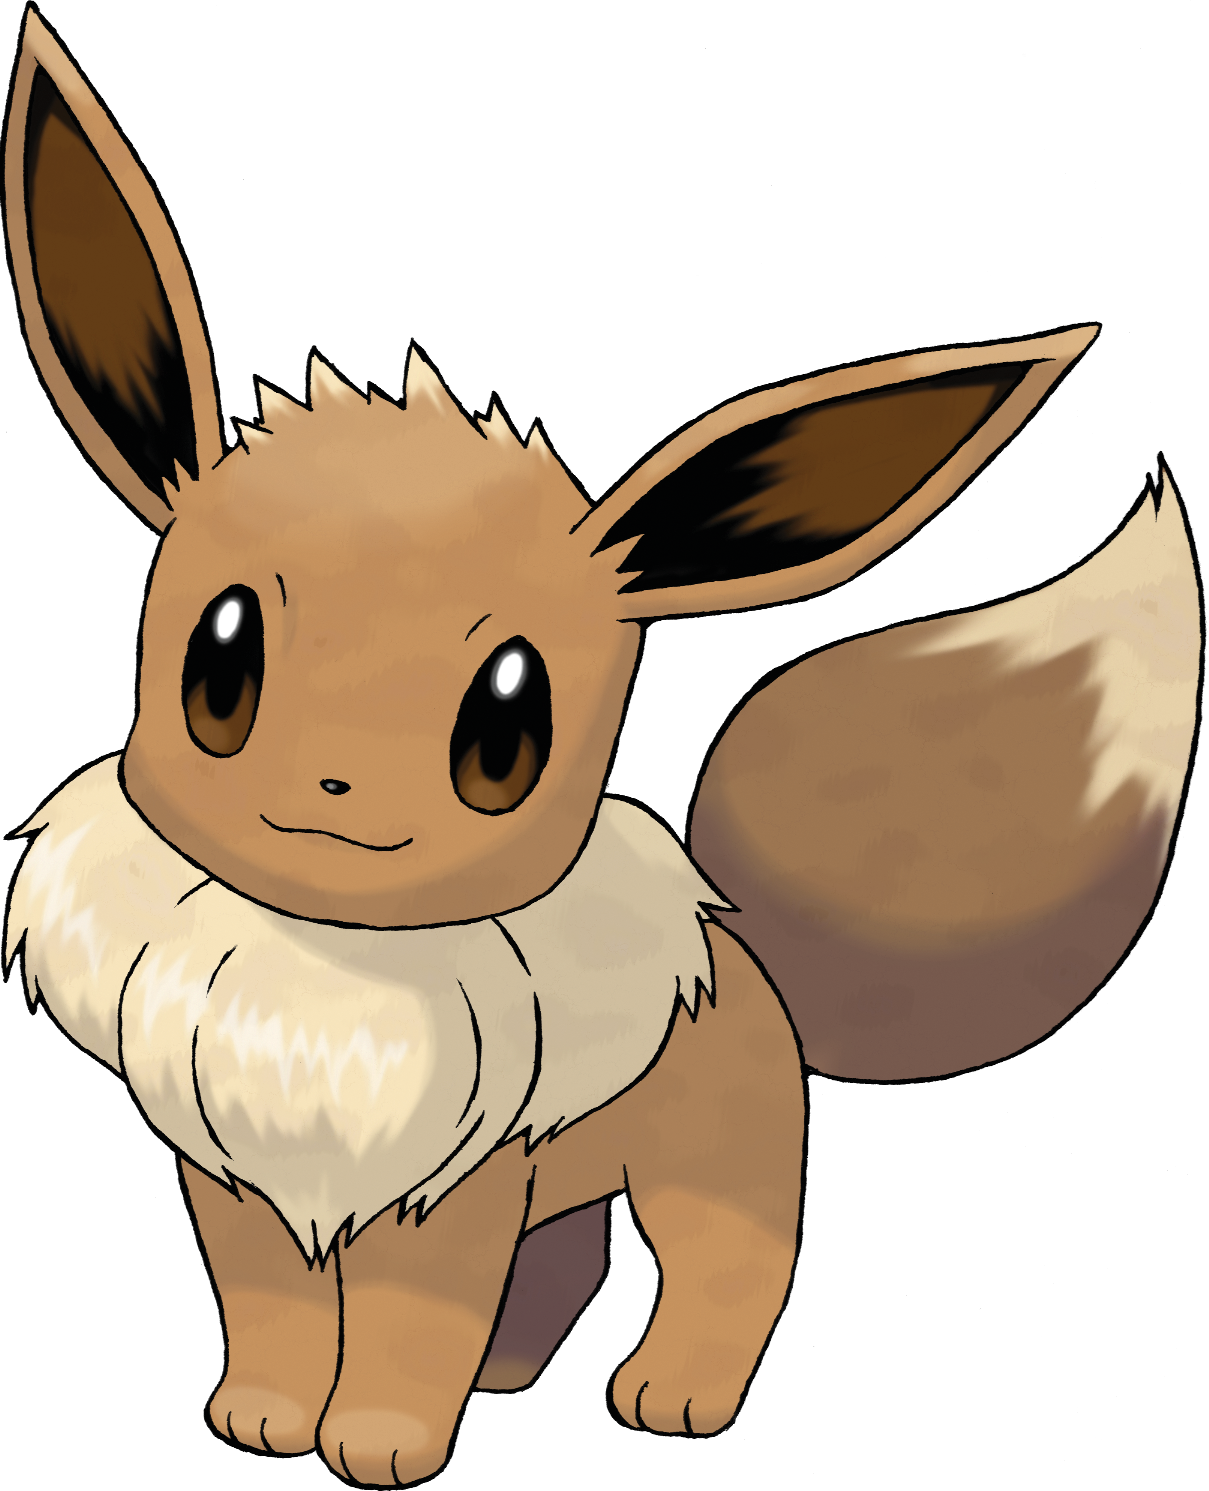 About your character: Sugimori_133